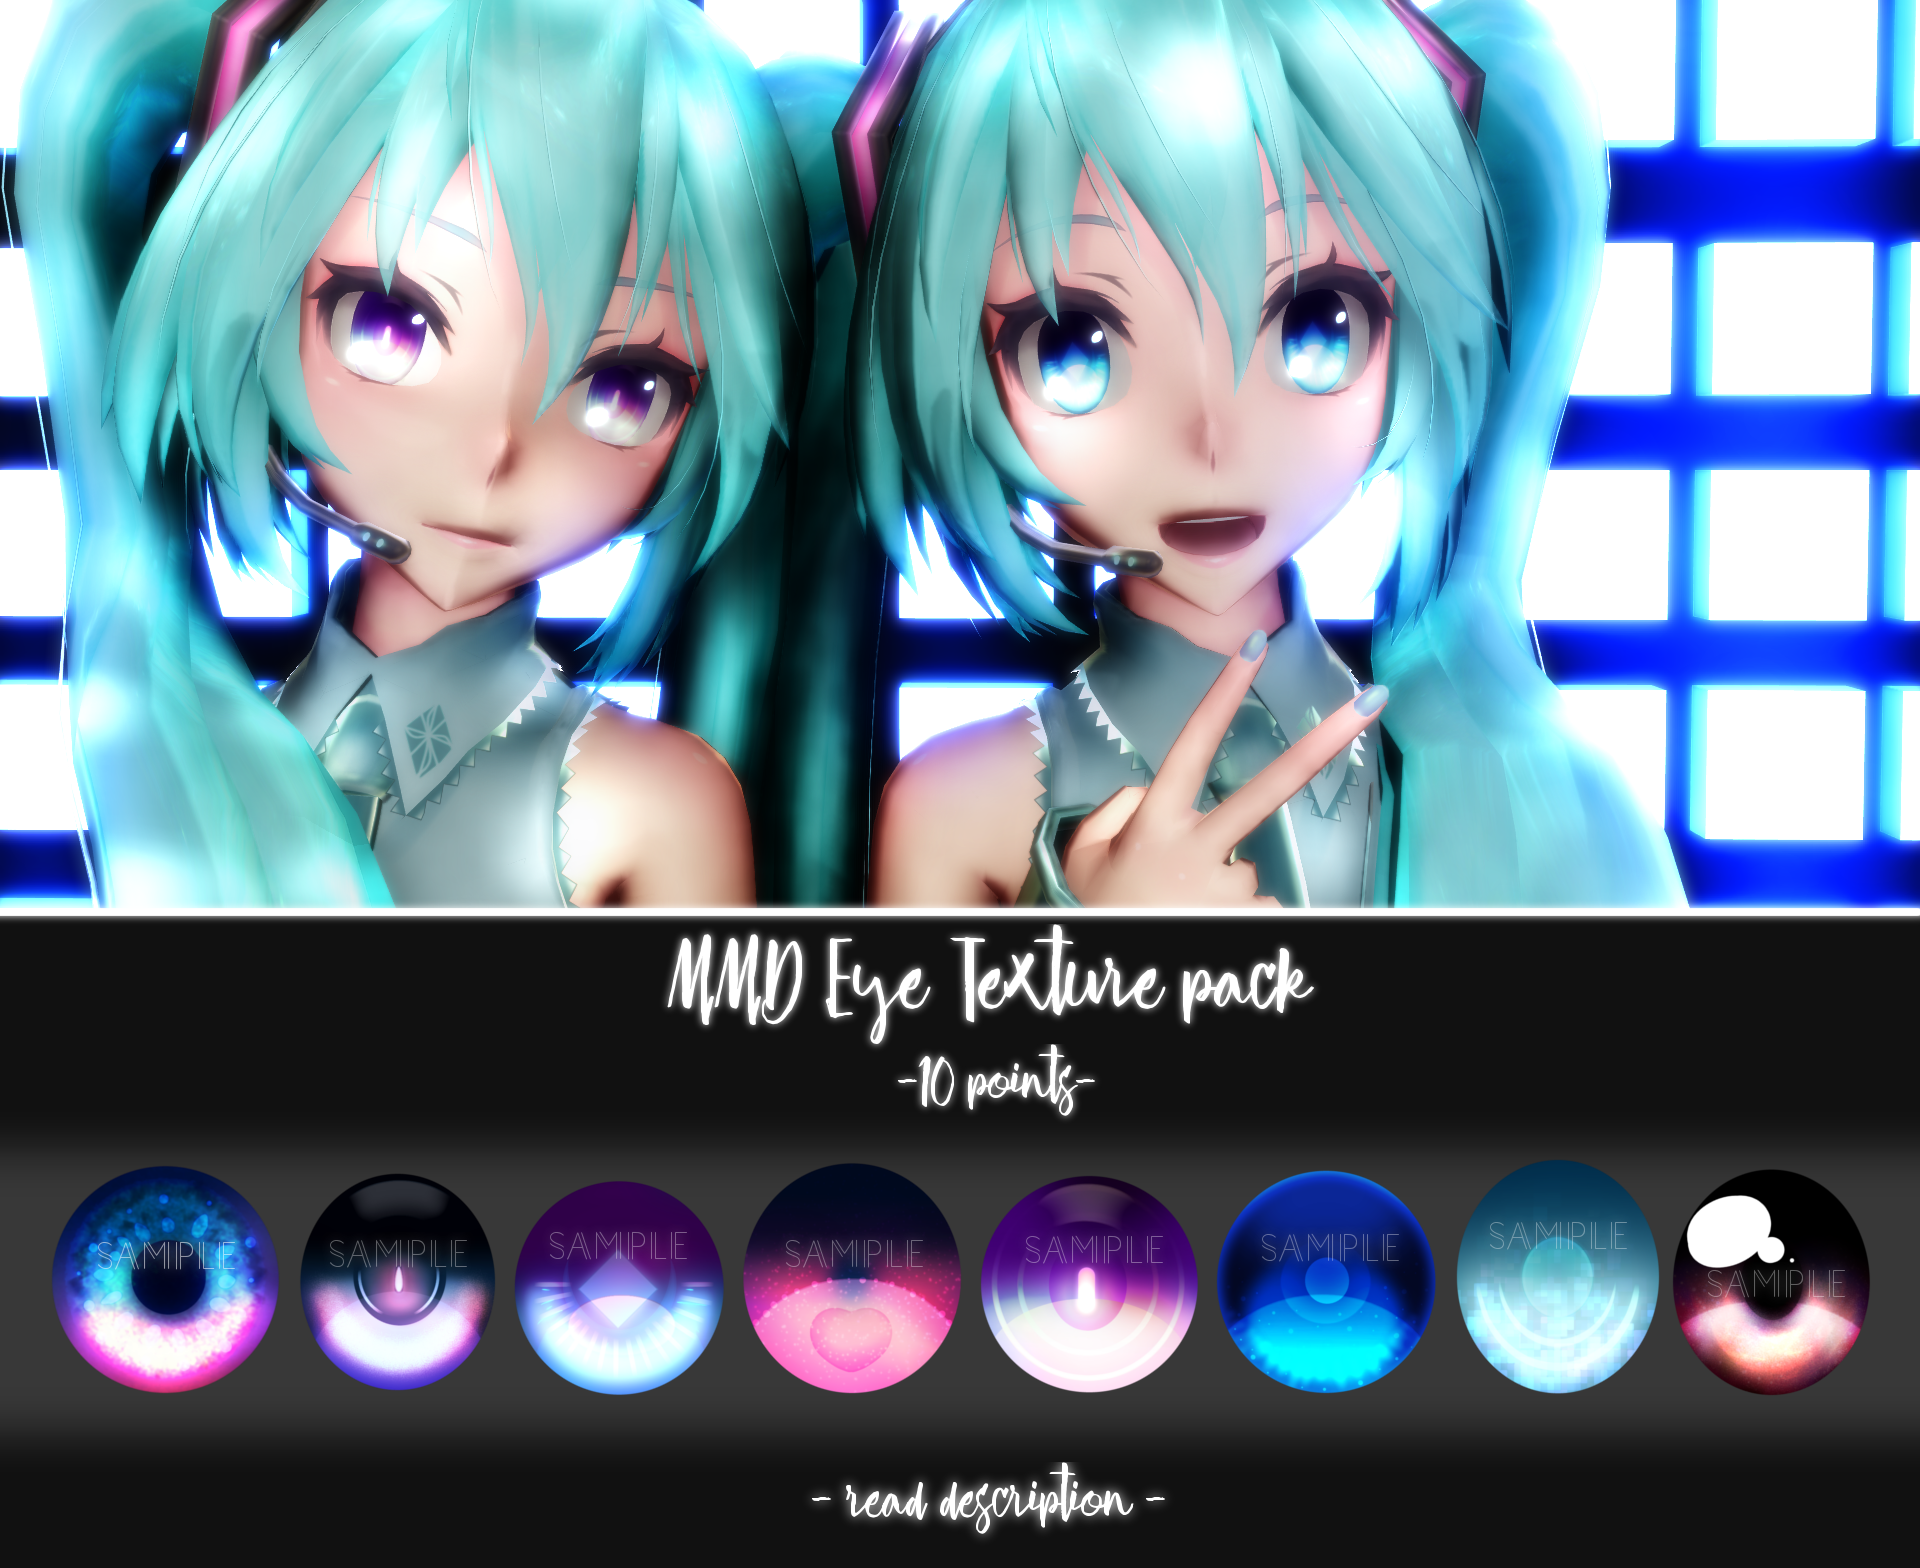 MMD Eye texture pack - 10 points by Relomi on DeviantArt